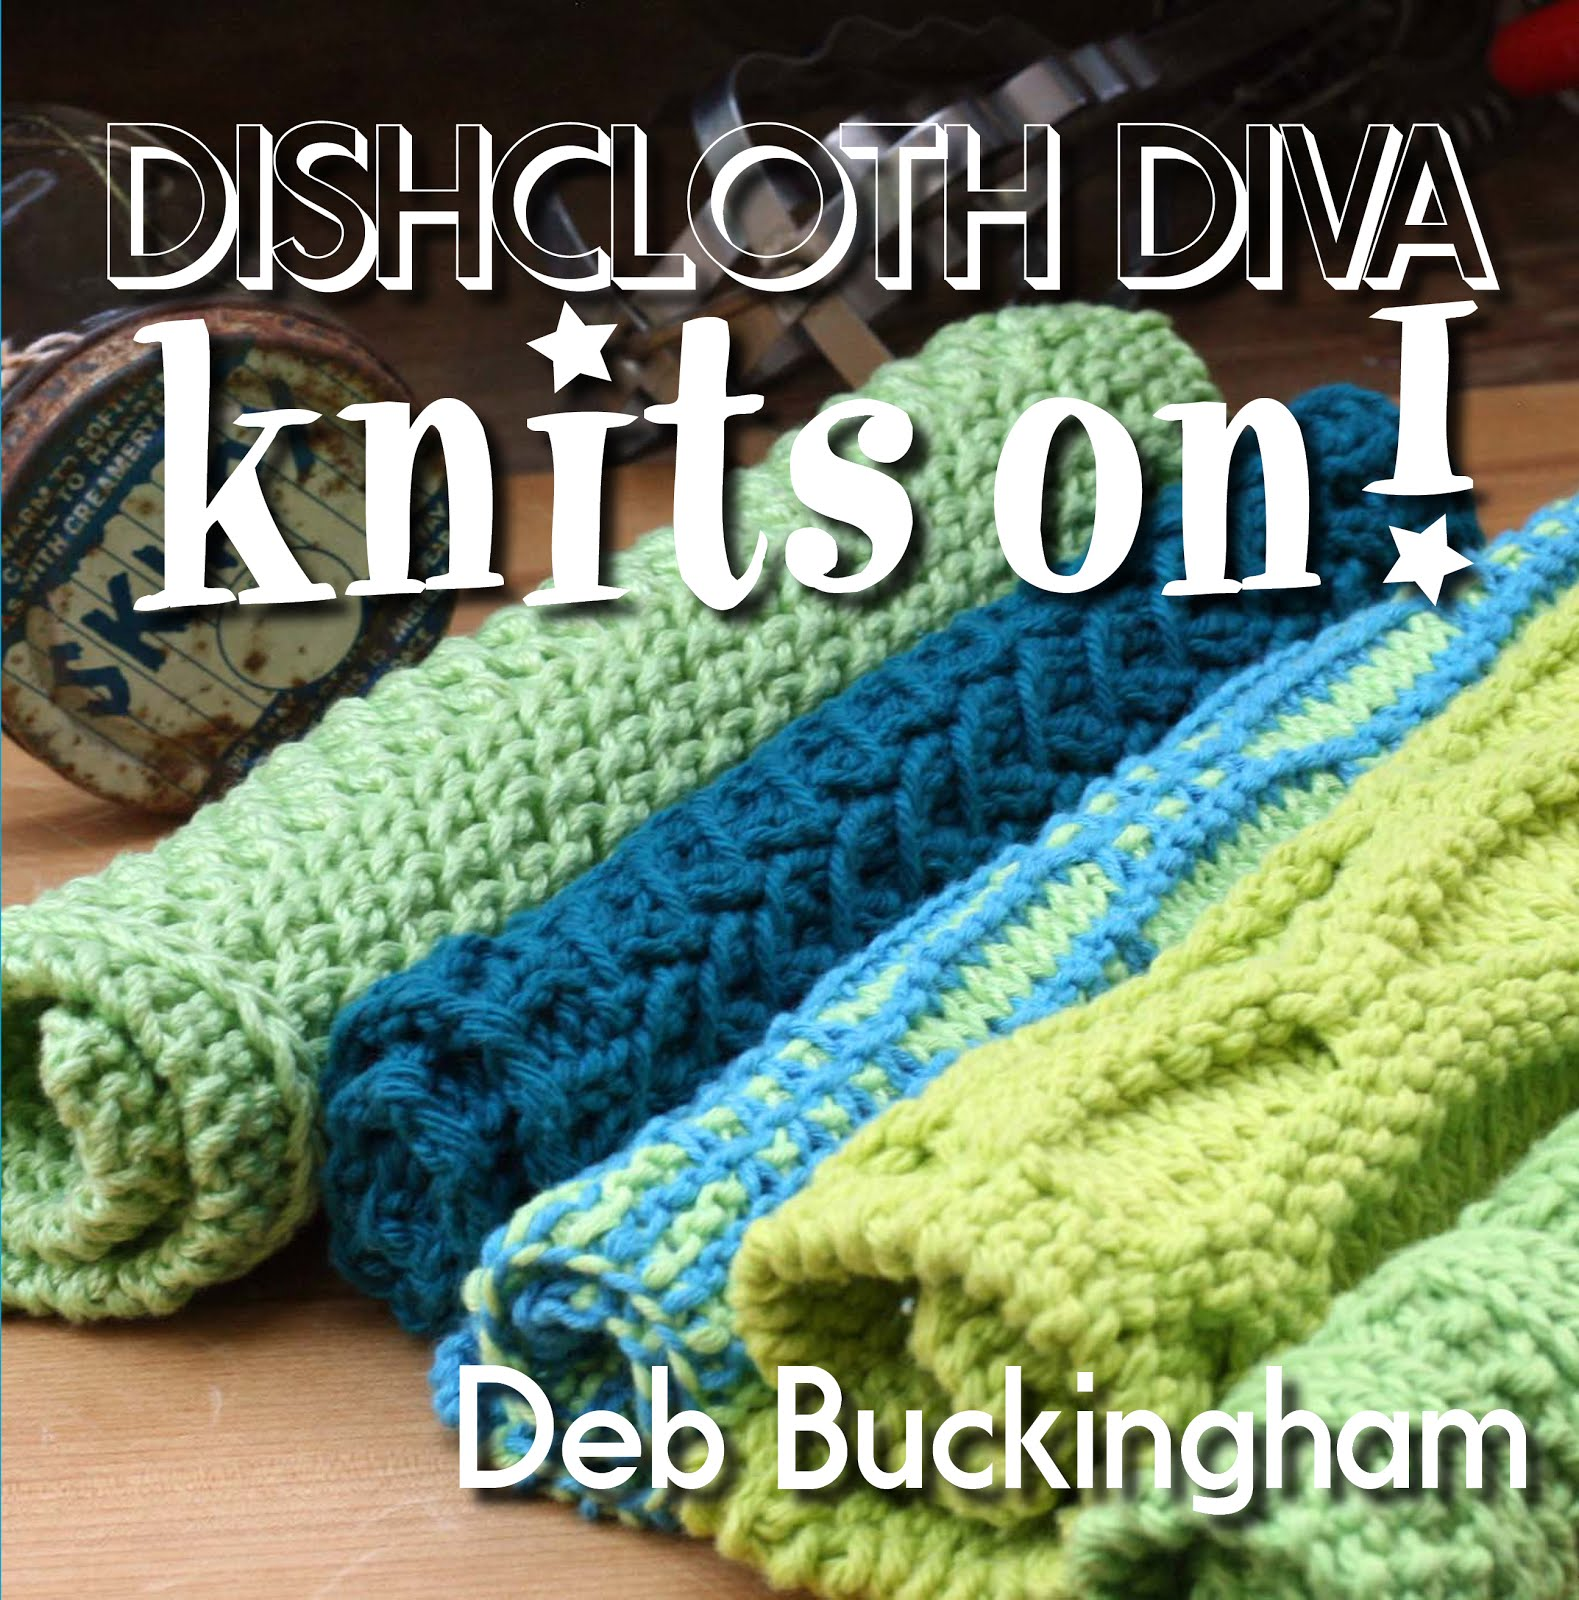 <b>Dishcloth Diva Knits On!</b><br>by Deb Buckingham